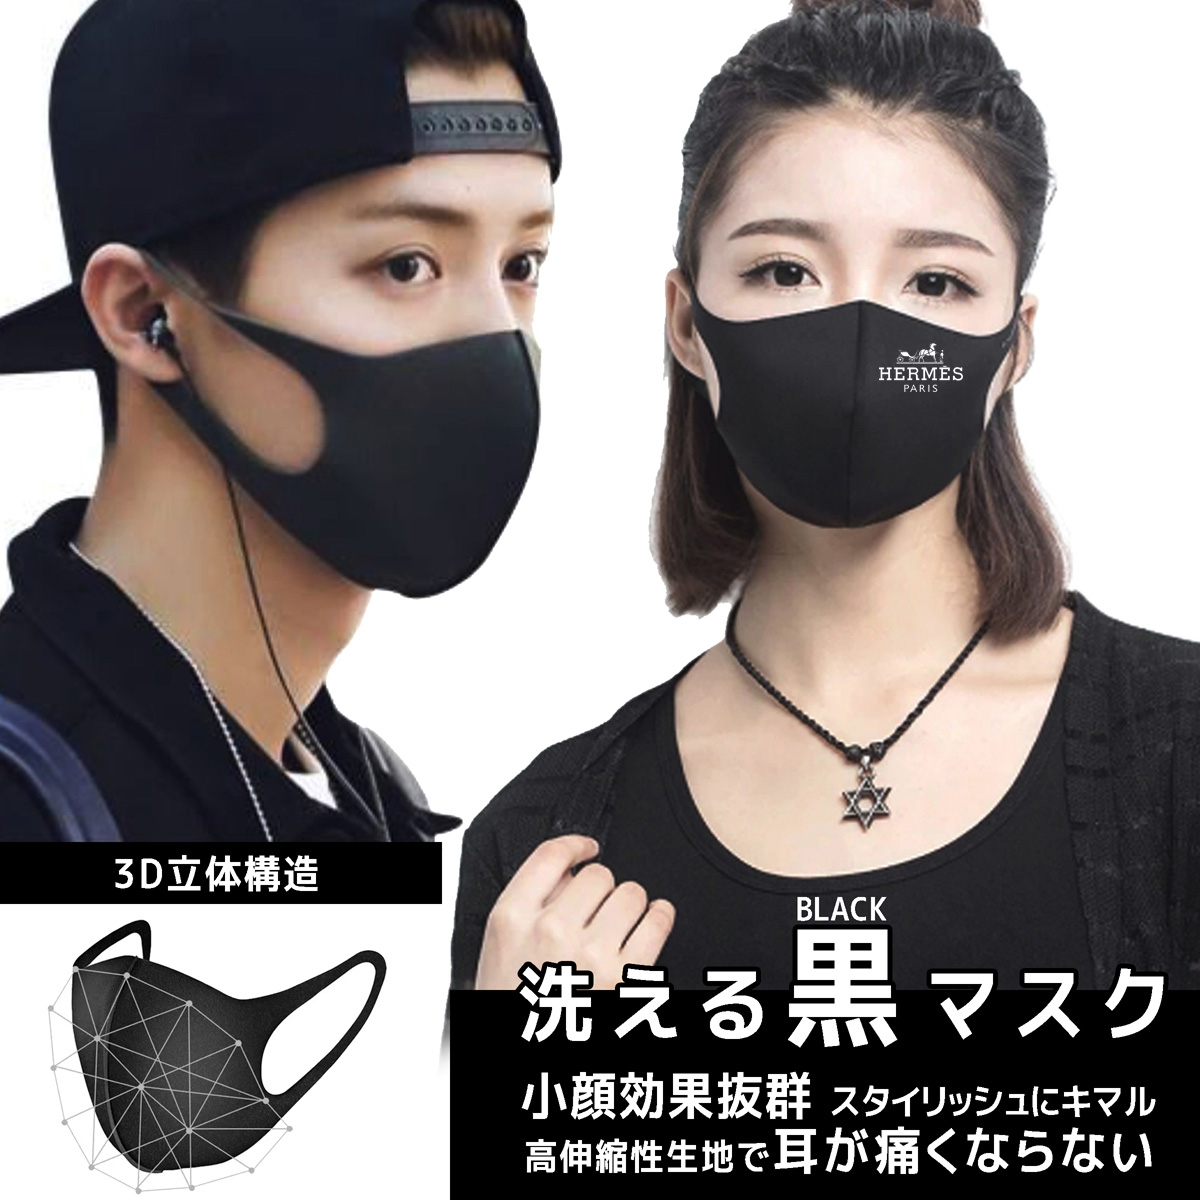 Quick-drying cloth breathable masks Hermes brand